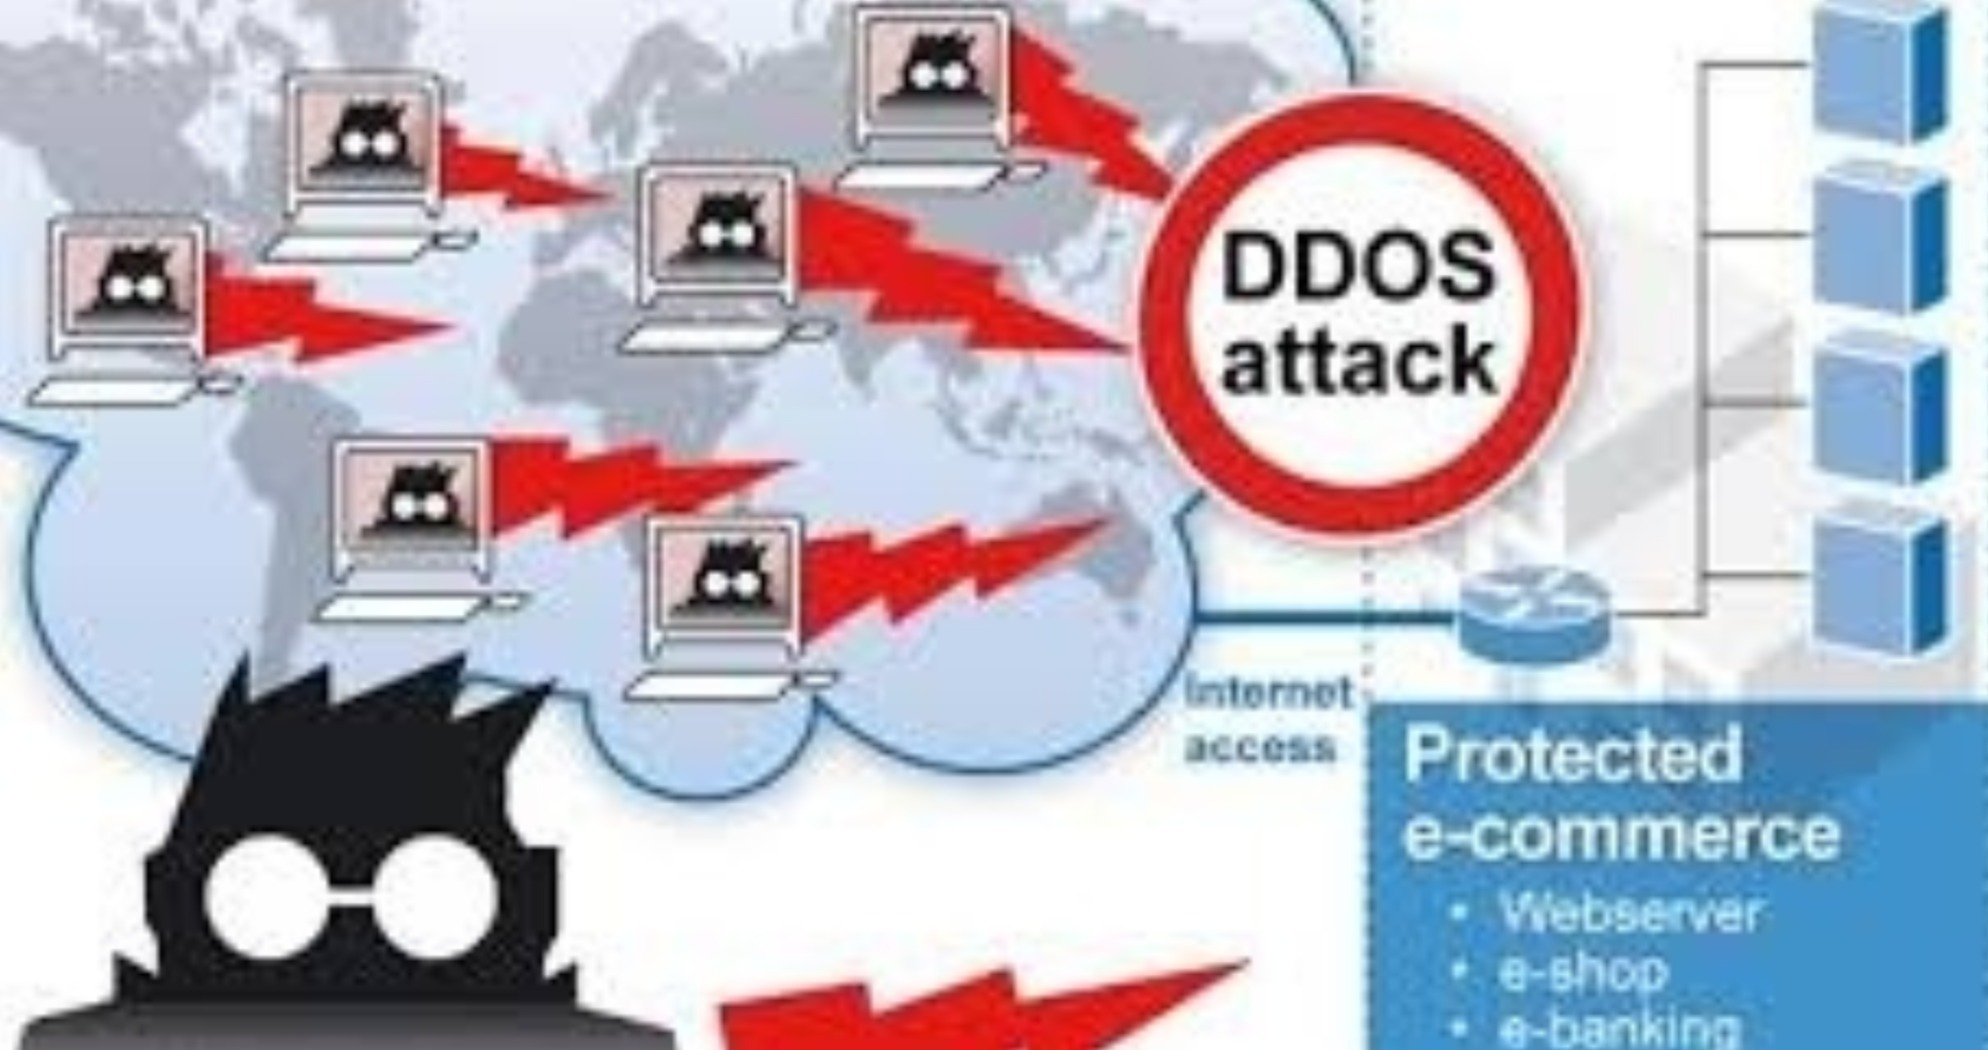 Over 50% increase in DDoS attacks recorded in Q1